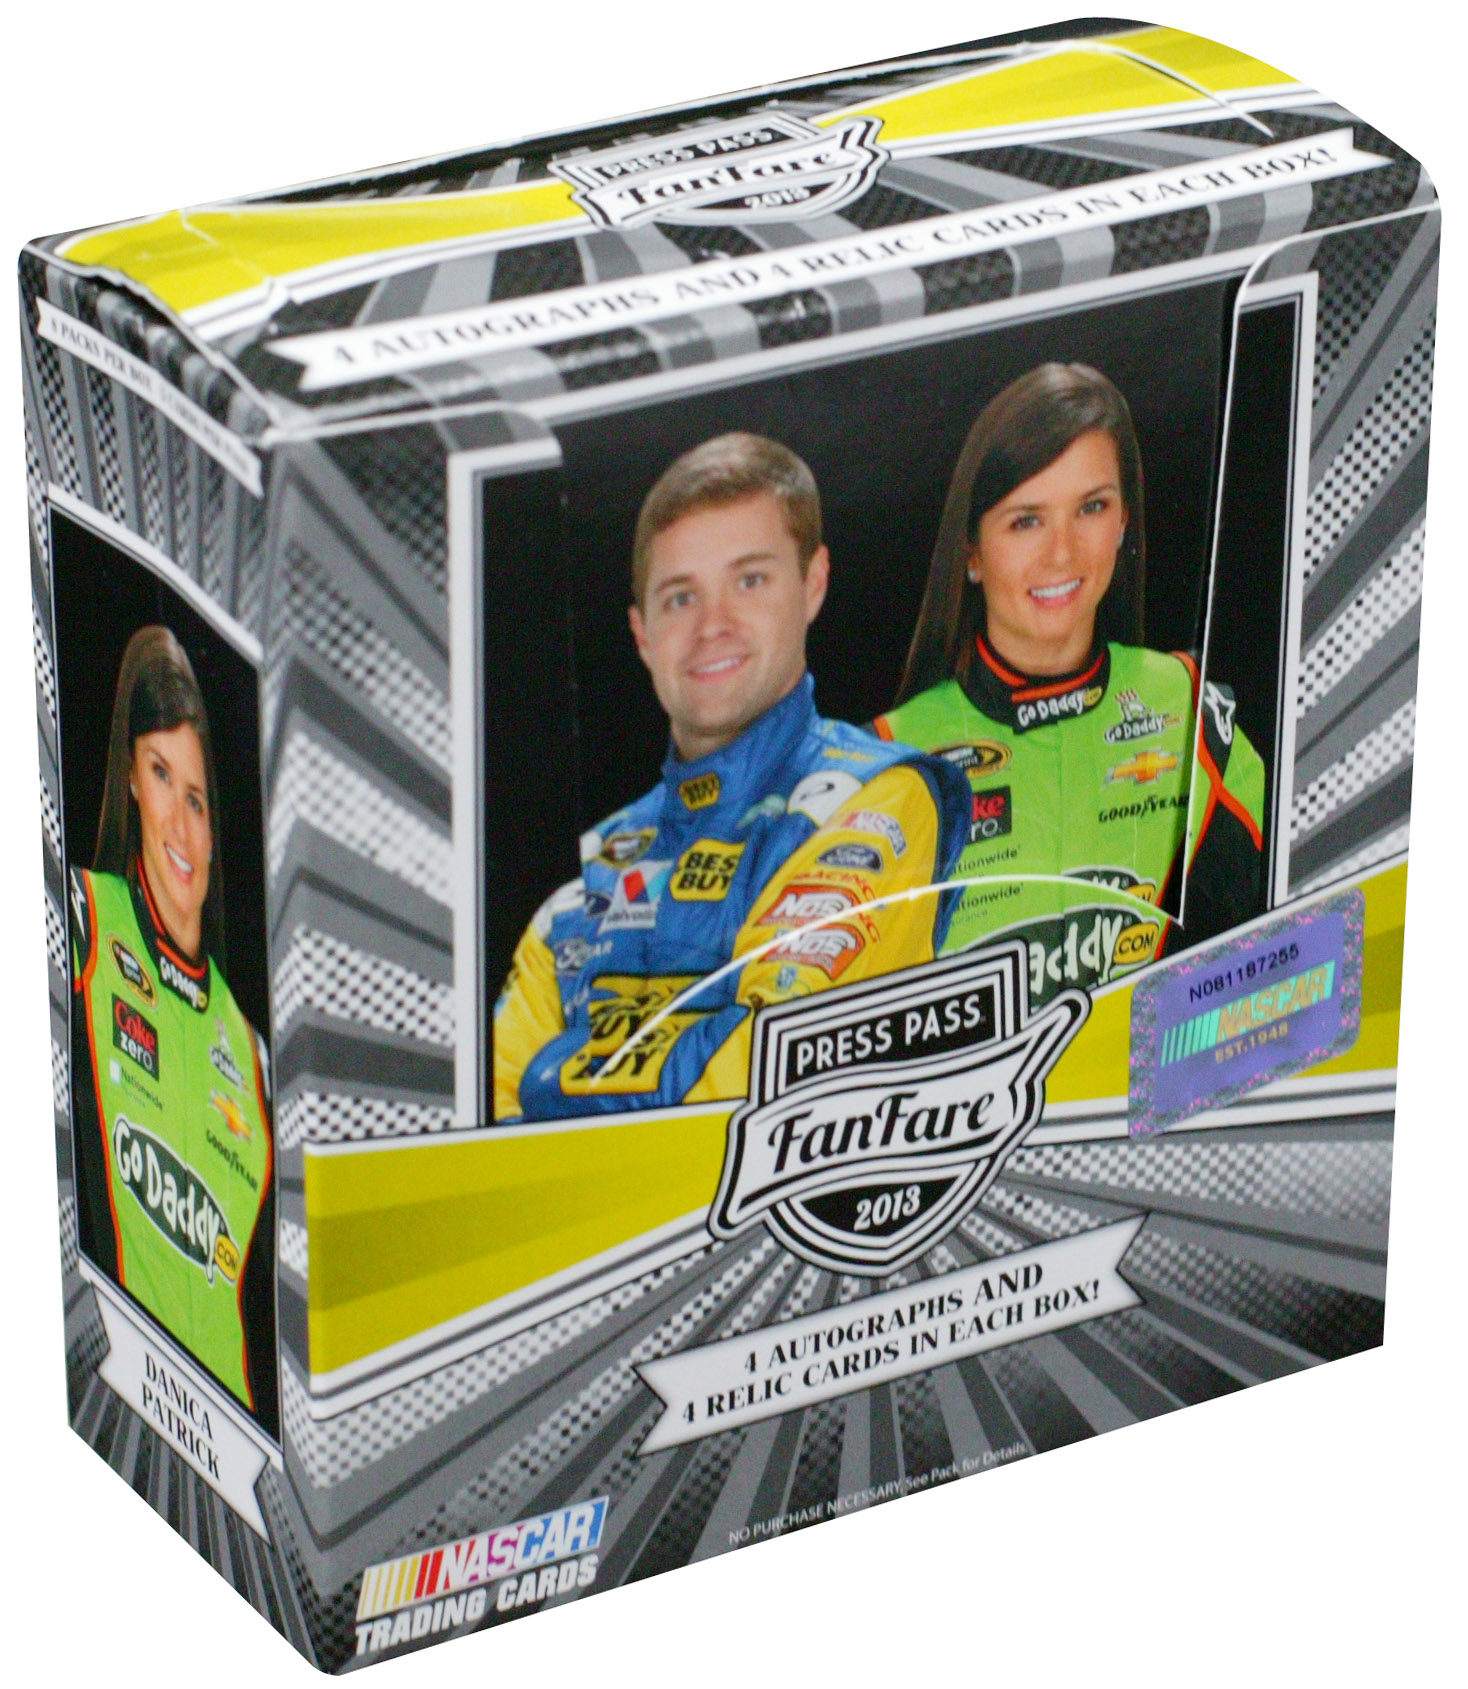 2013 Press Pass Fanfare Racing Hobby Box